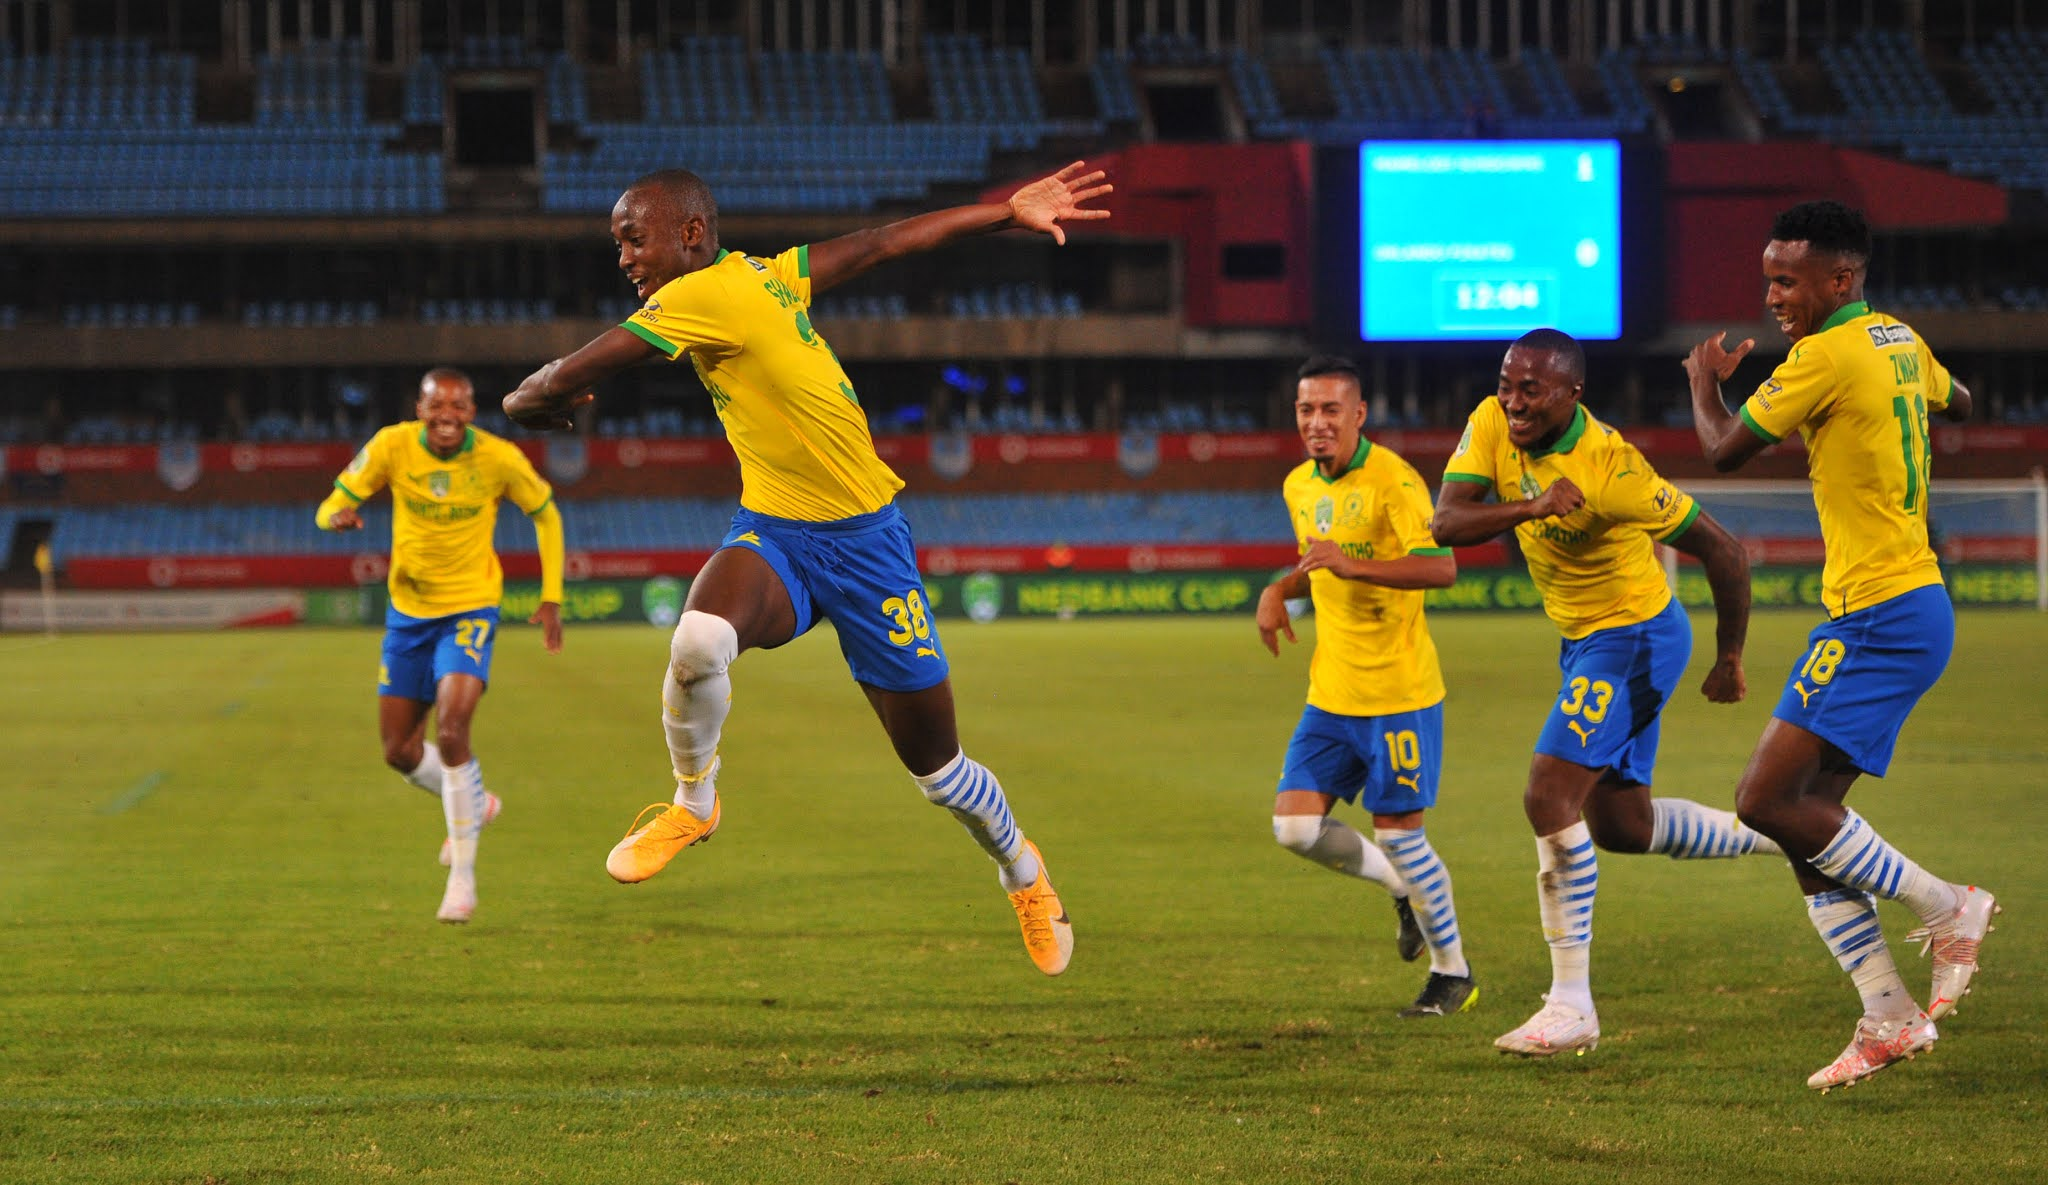 Masandawana face former boss Pitso Mosimane in a high stakes CAF Champions League knockout clash